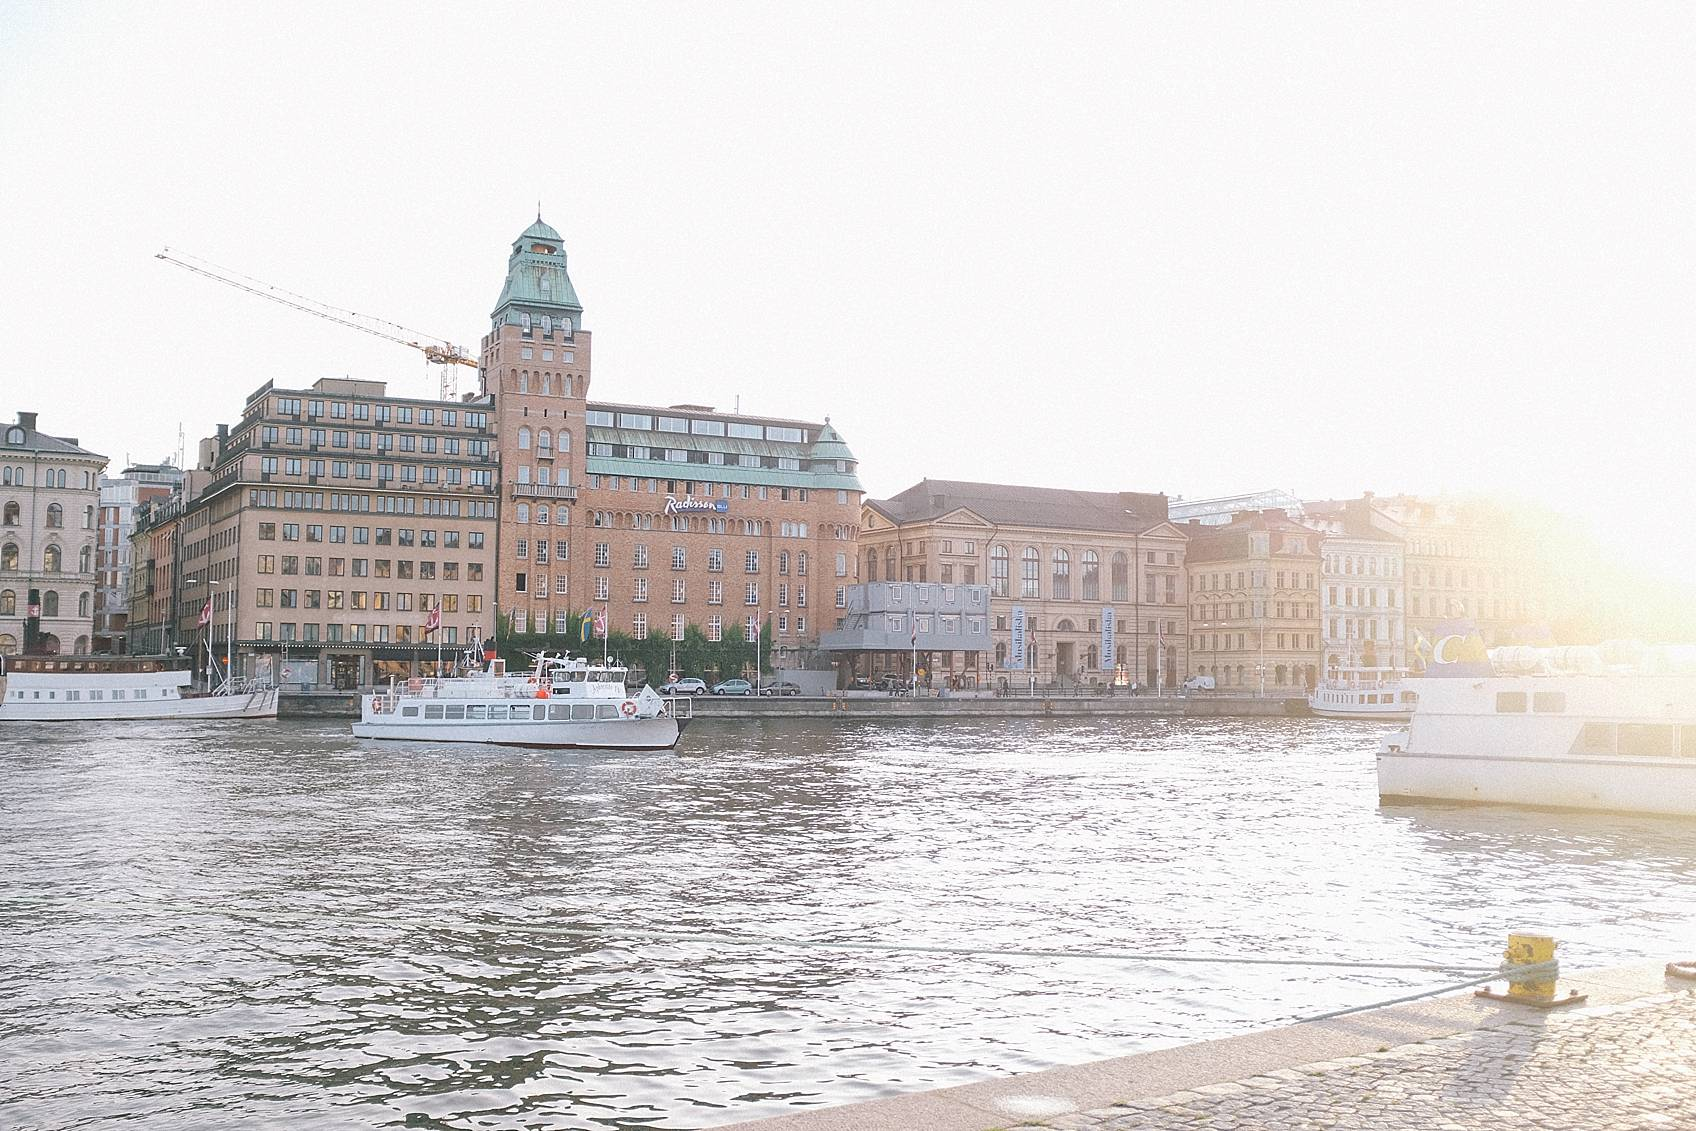 Photo tour of Stockholm: by the ocean ships